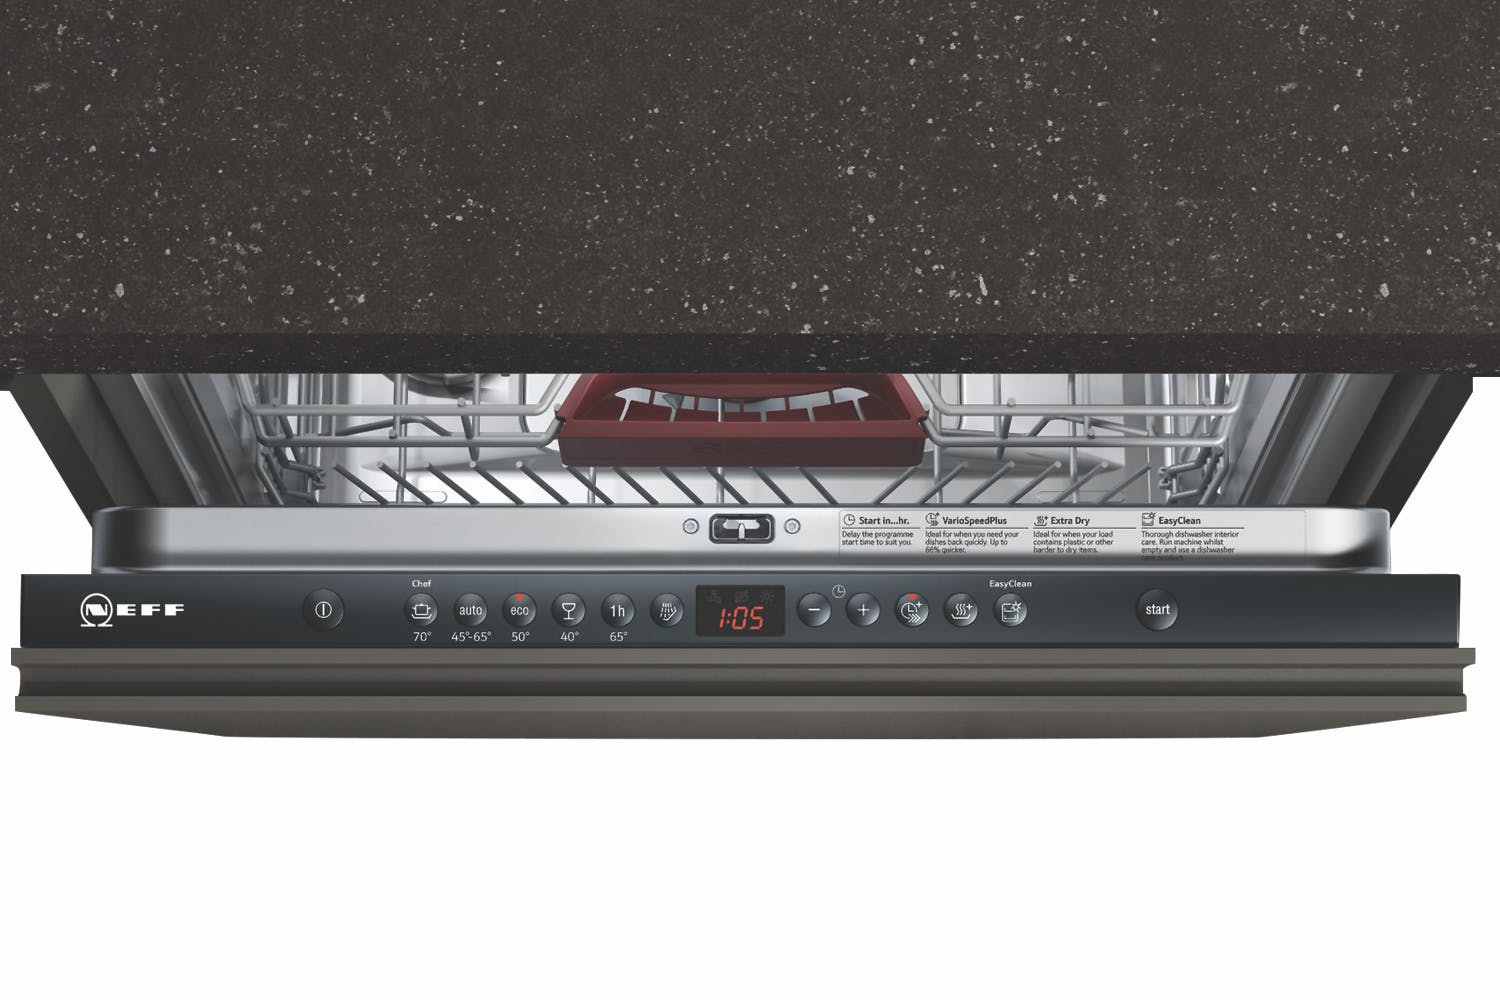 Neff Fully Integrated Dishwasher 13 Place S513k60x0g Ireland